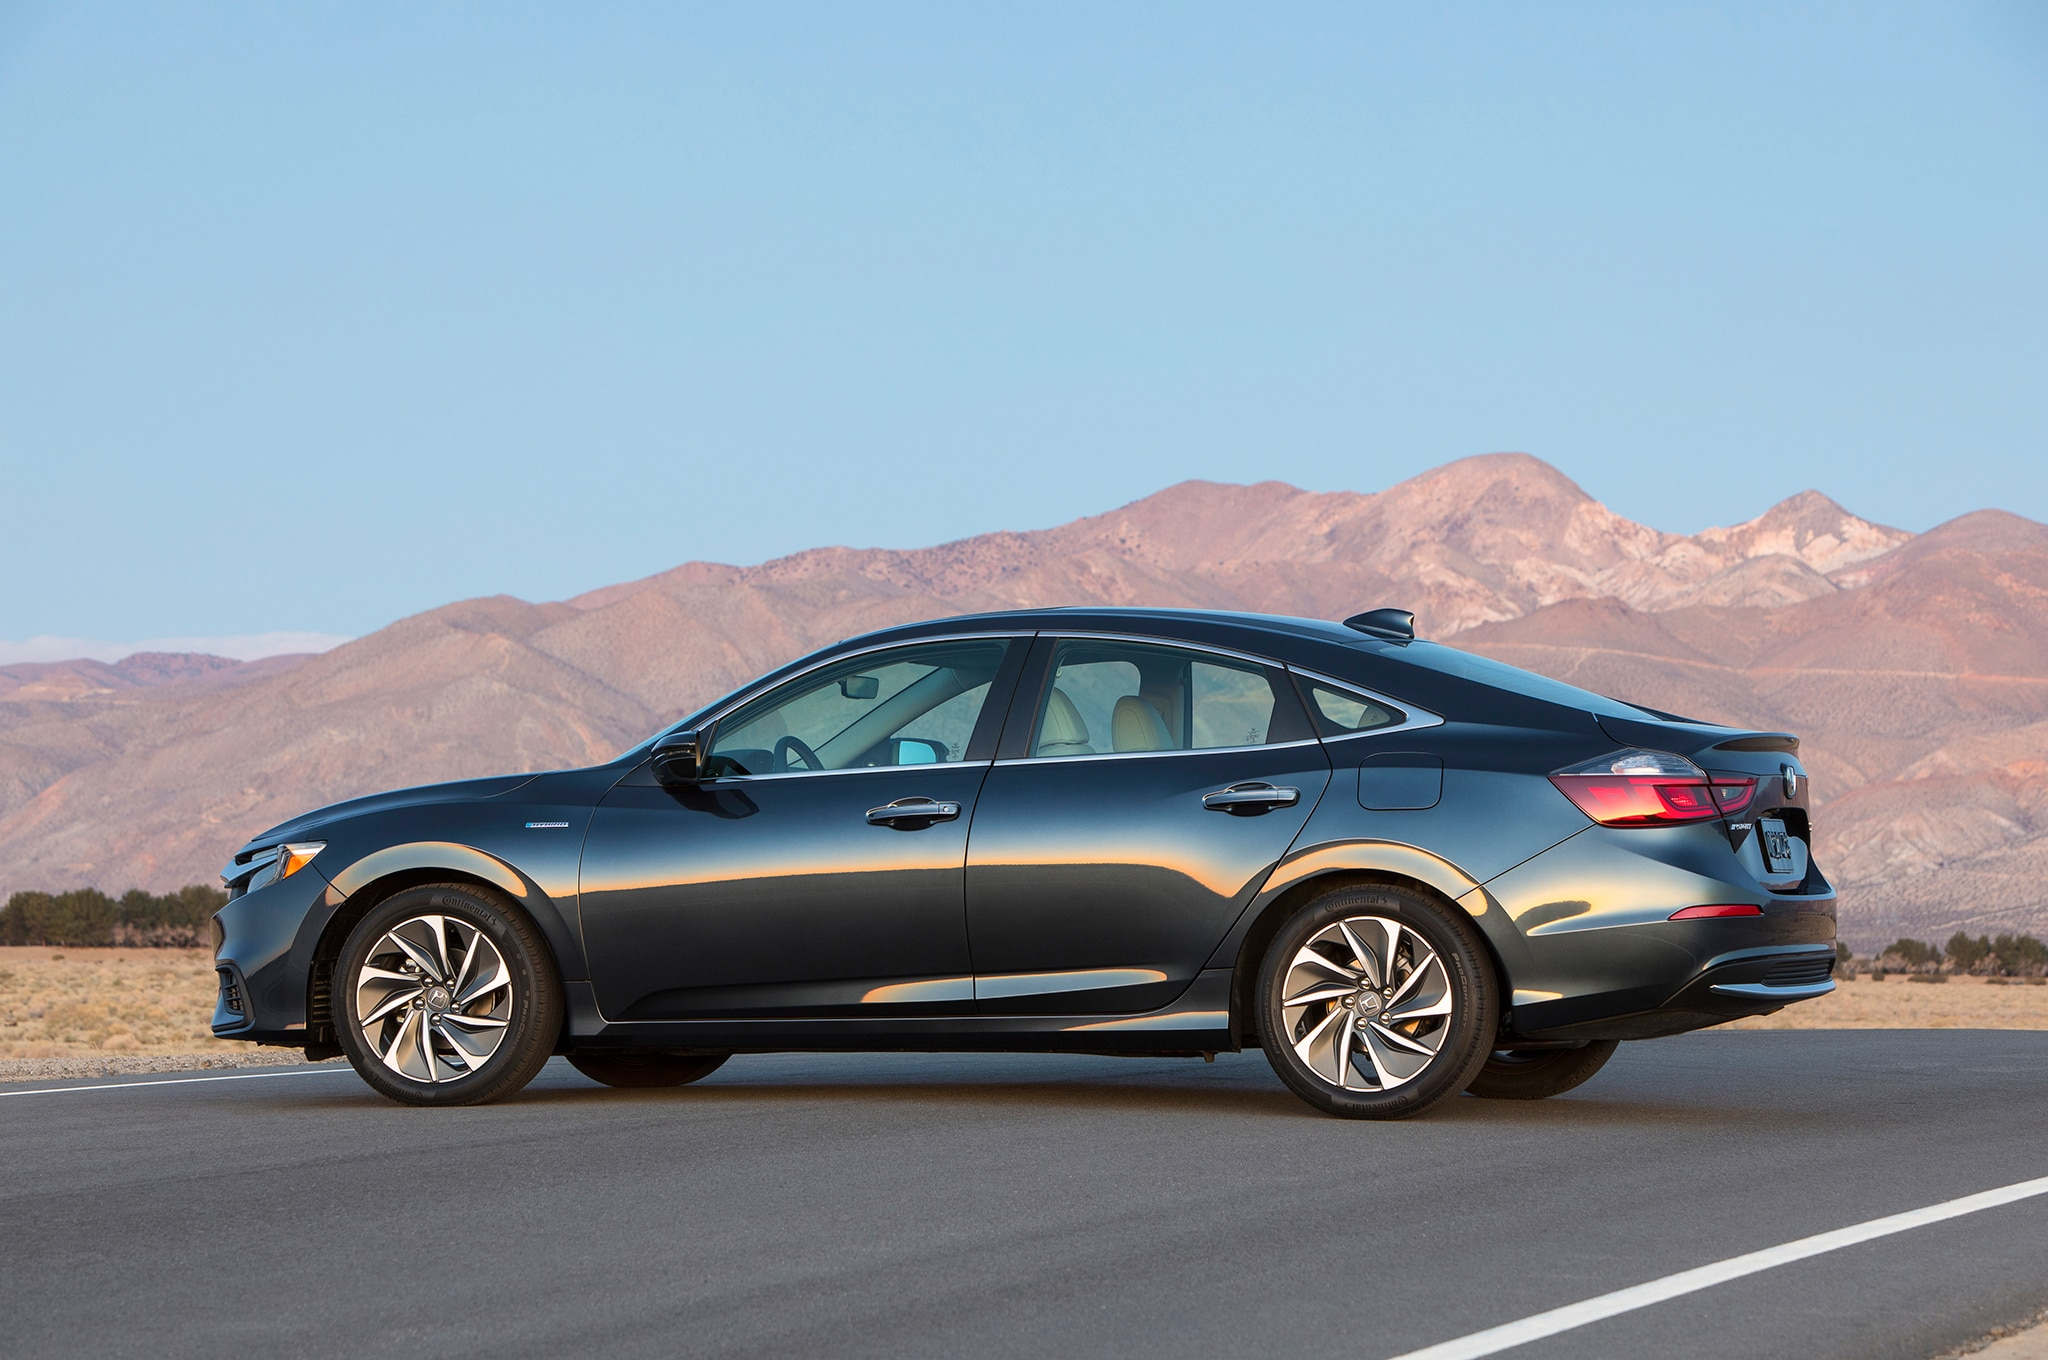 Honda Greensburg Indiana >> 2019 Honda Insight Gets Up to 55 MPG | Automobile Magazine